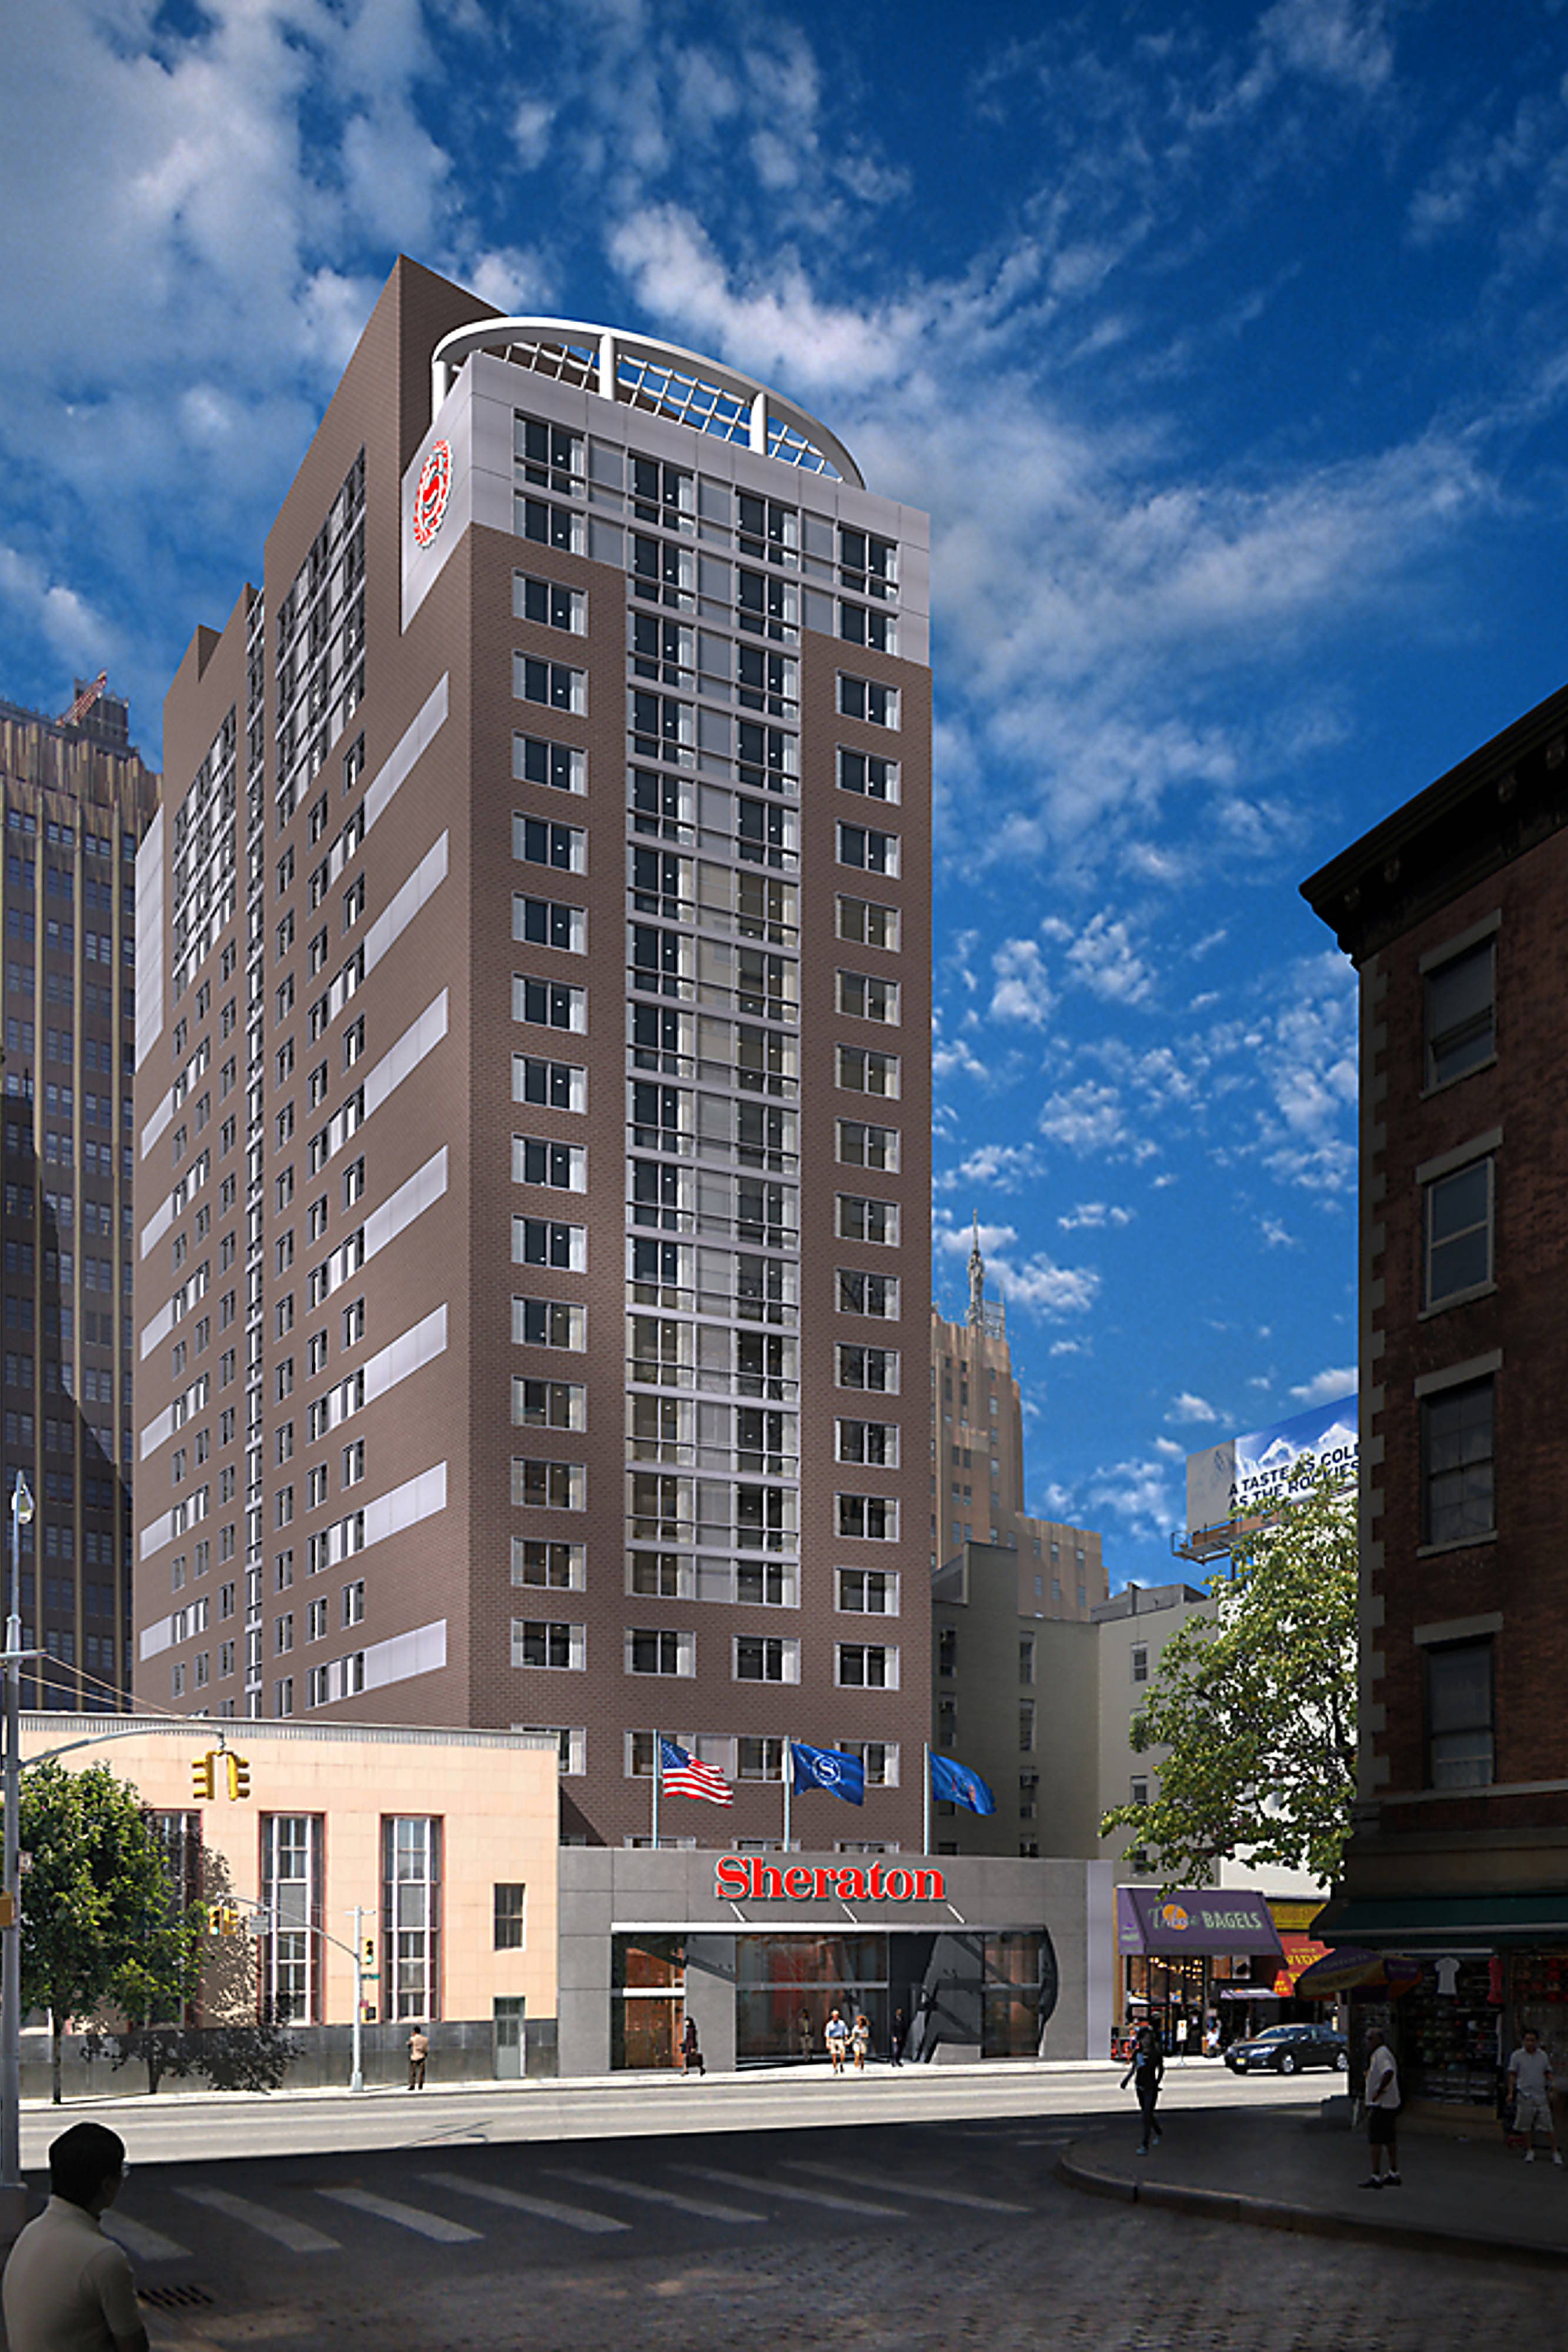 Sheraton Tribeca New York Hotel First Class New York Ny Hotels Gds Reservation Codes Travel Weekly